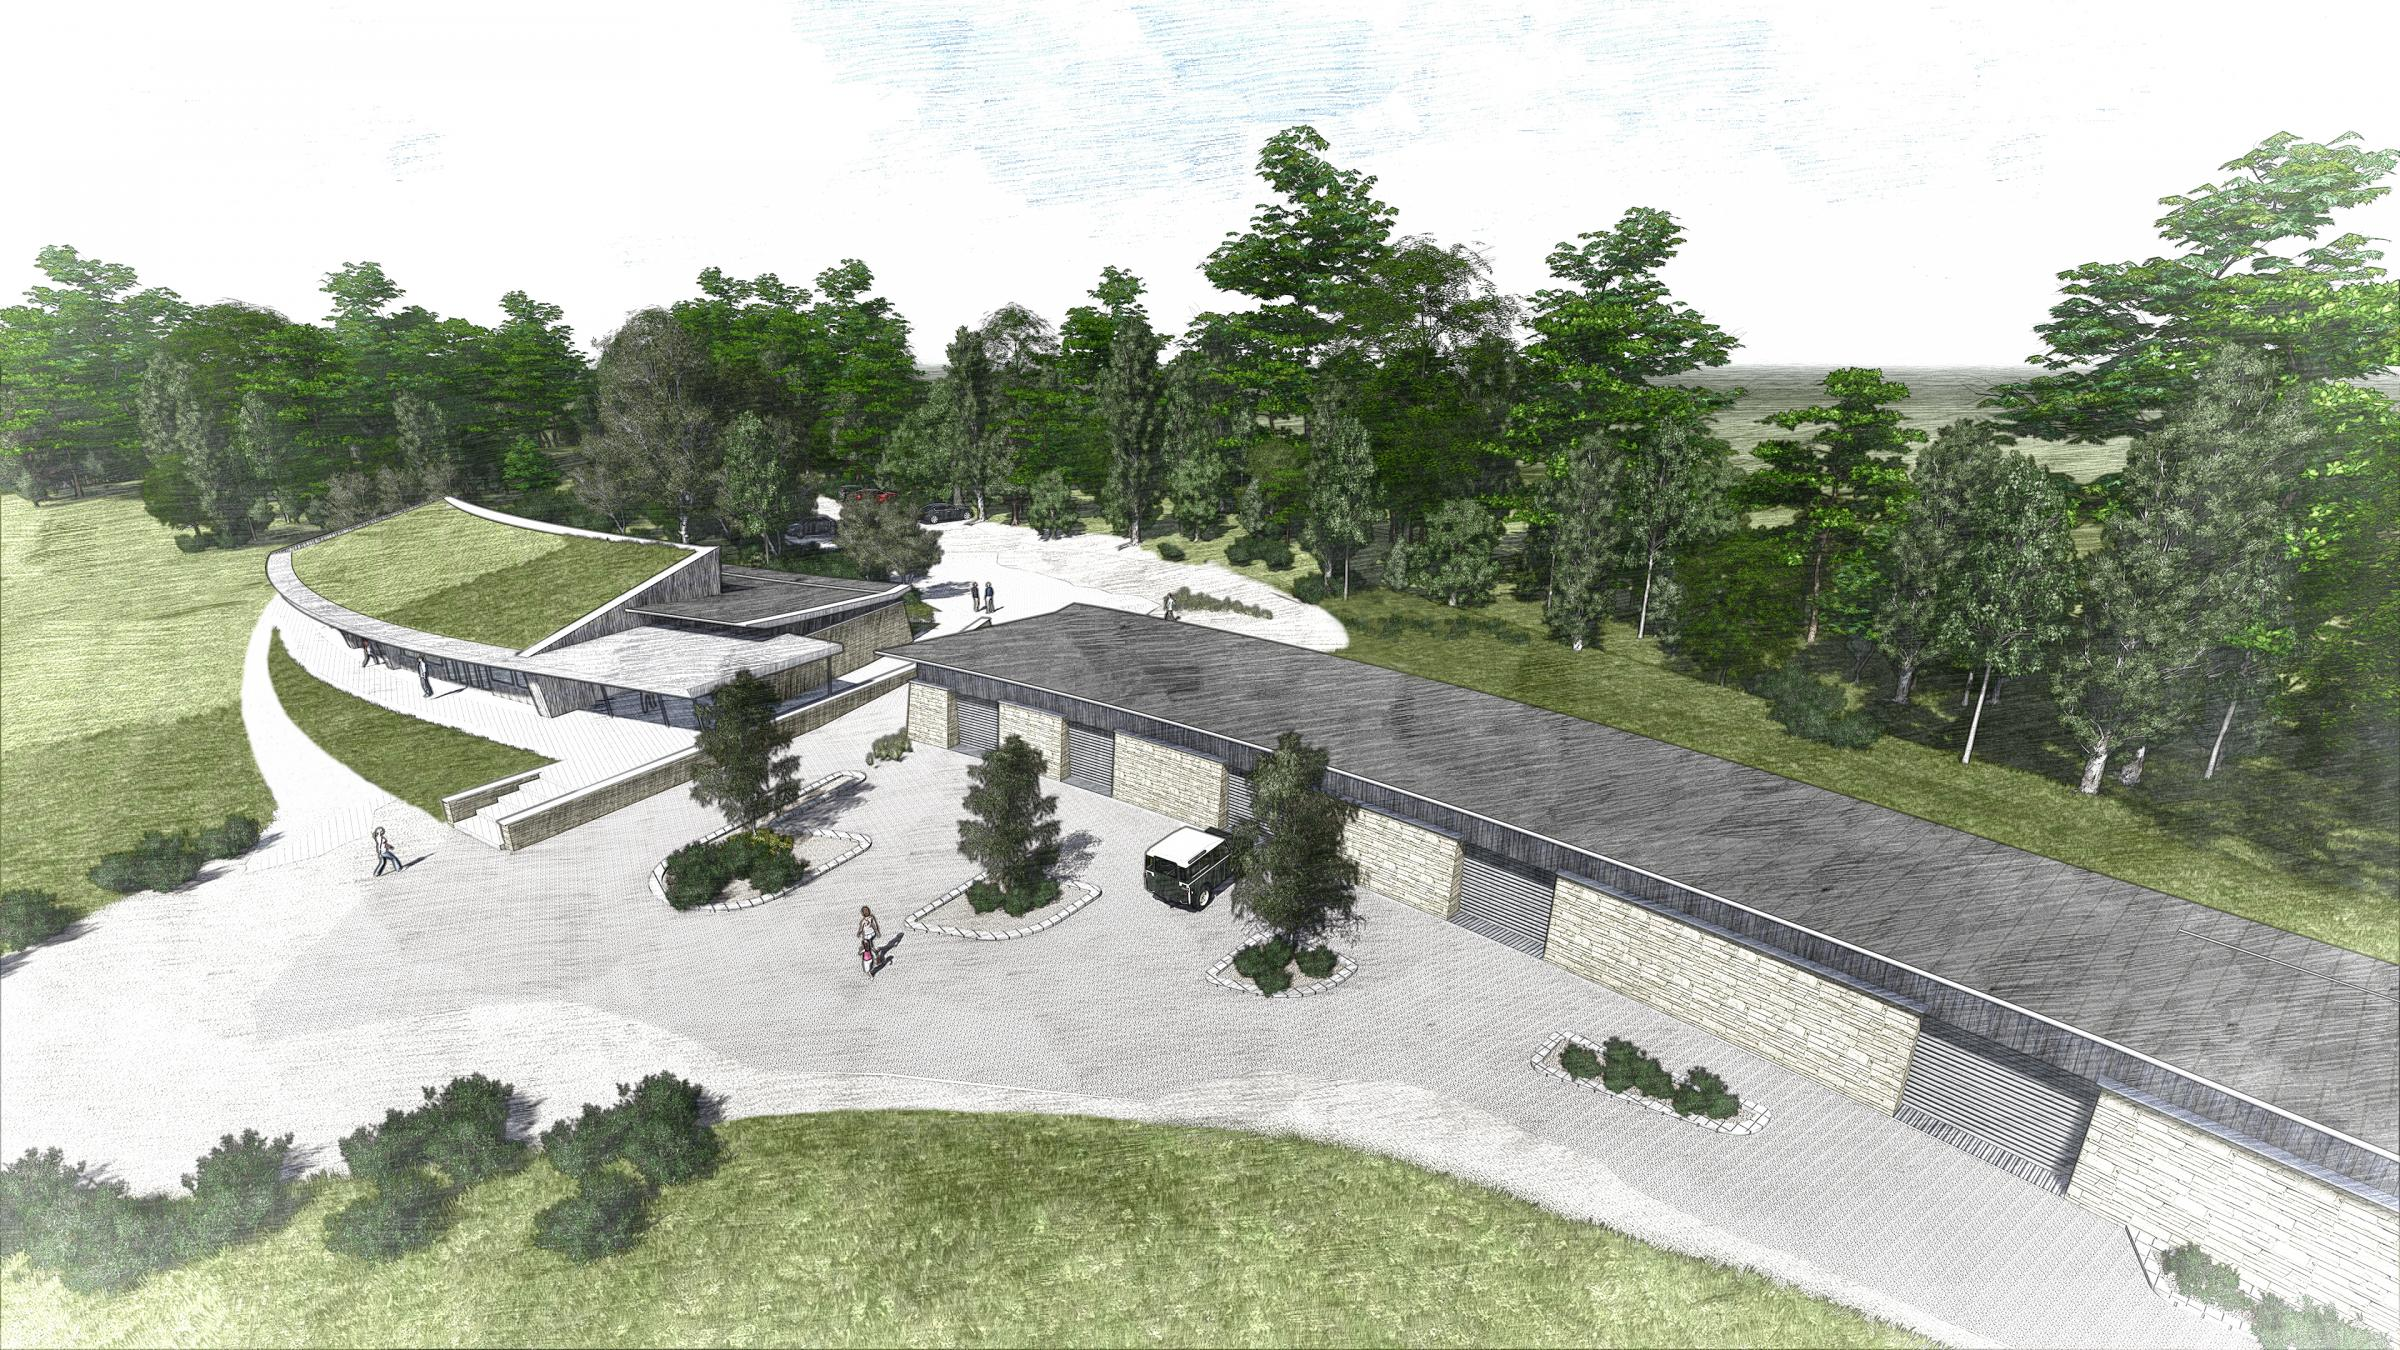 New £2.5 million water sports centre given go ahead for Hampshire lake. Image by RH Partnership Architects.